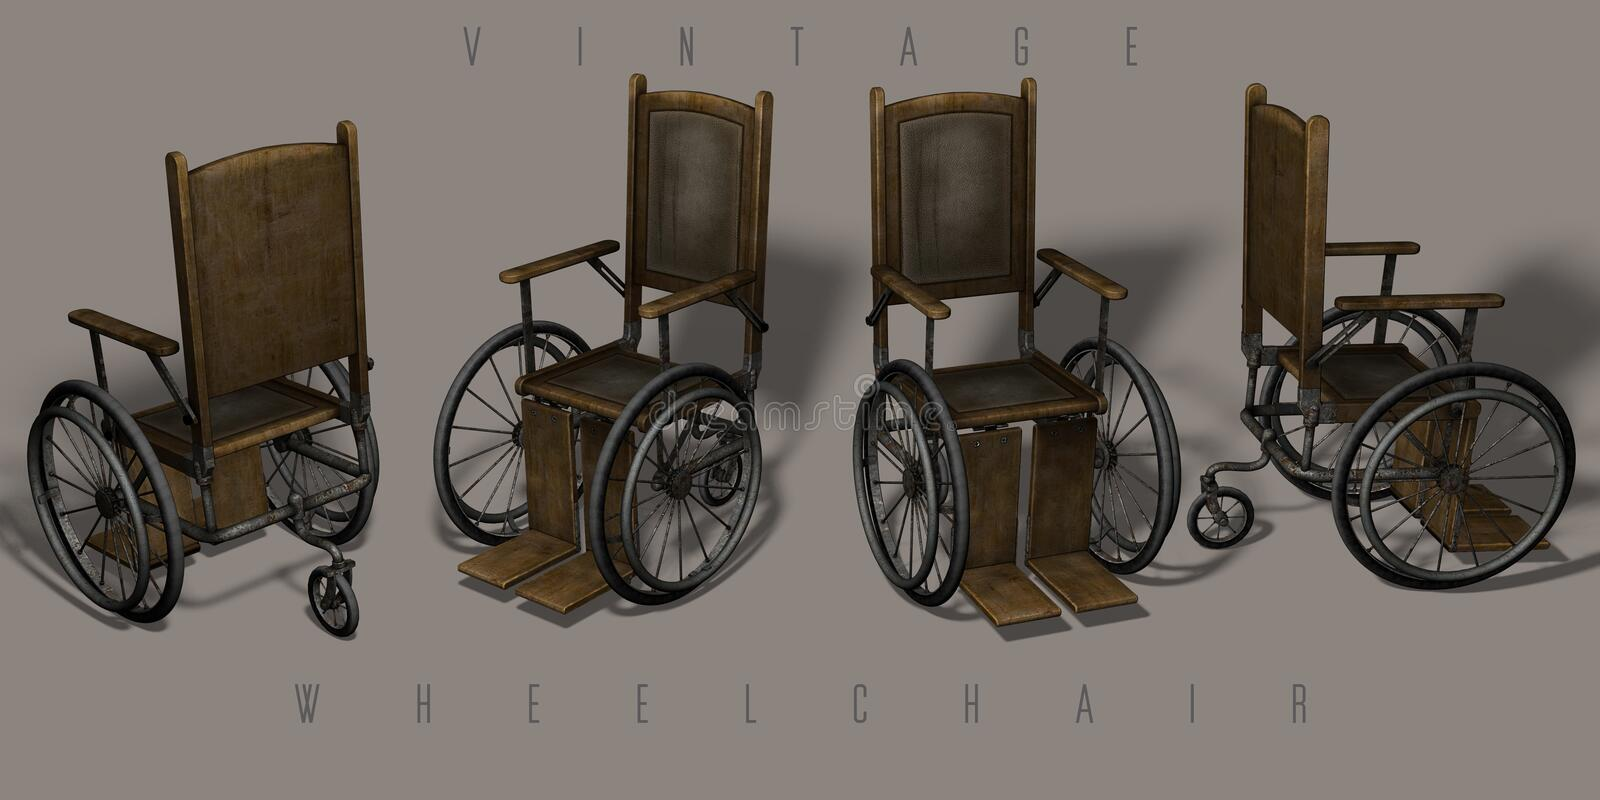 Vintage wheelchairs